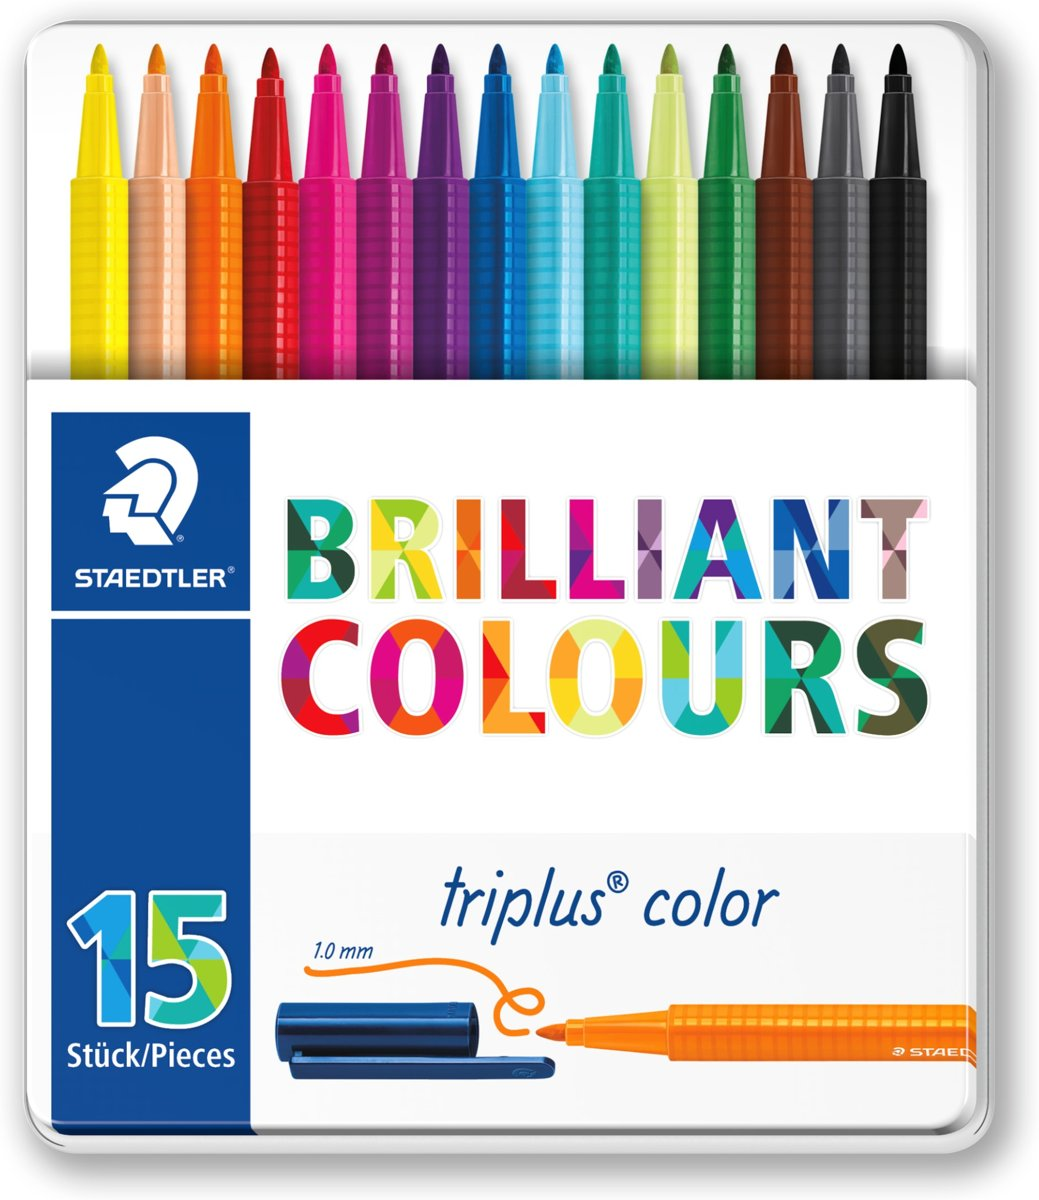 triplus color kleurstift - metalen etui 15 st